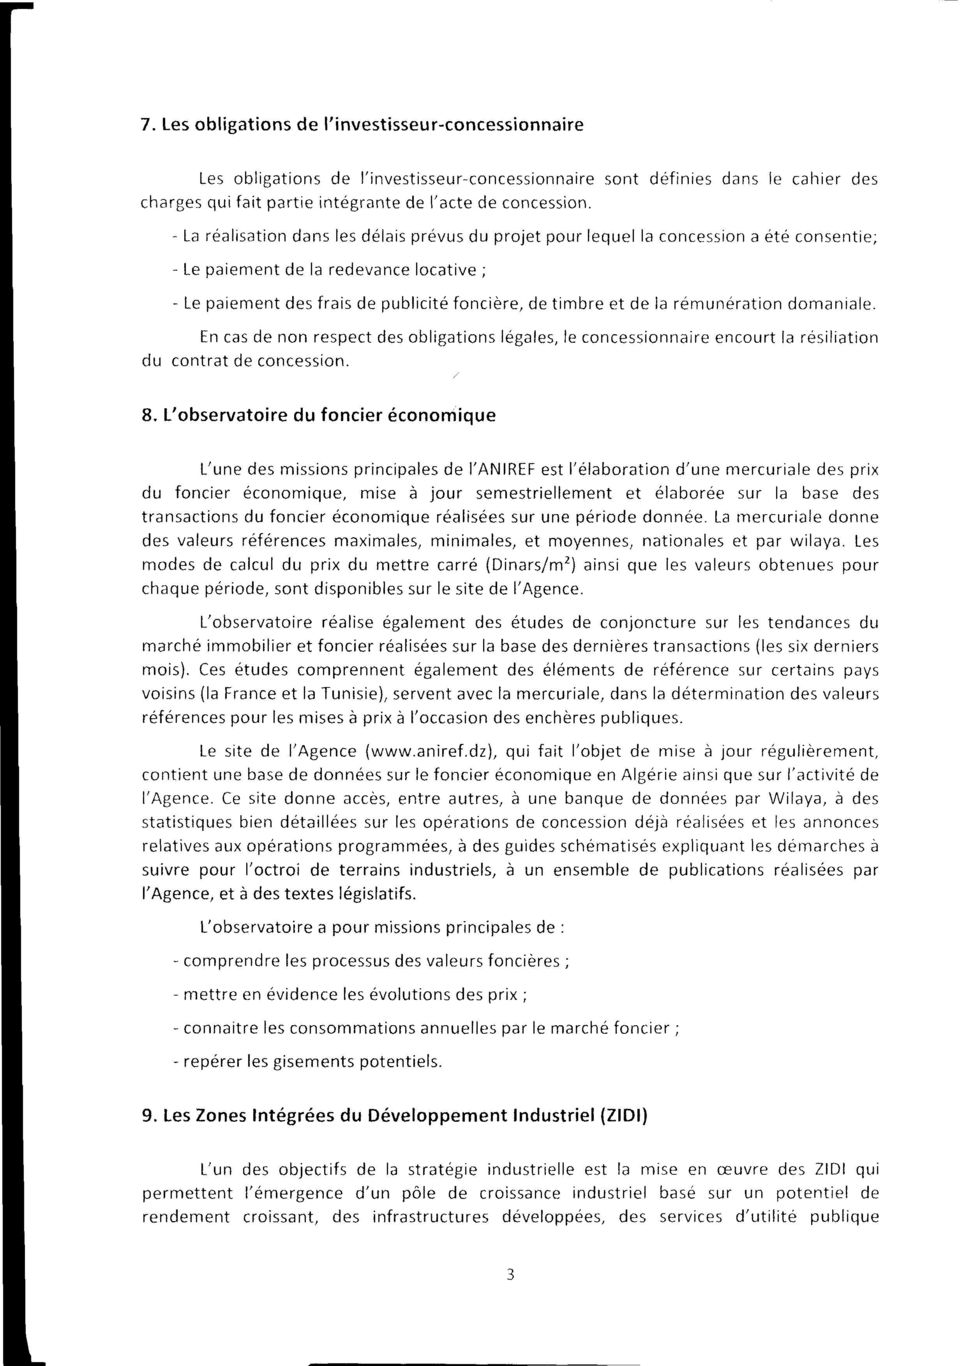 römuneration domaniale. Fn cas de non respect des obligations legales, le concessionnaire encourt la resiliation du contrat de concession. 8.